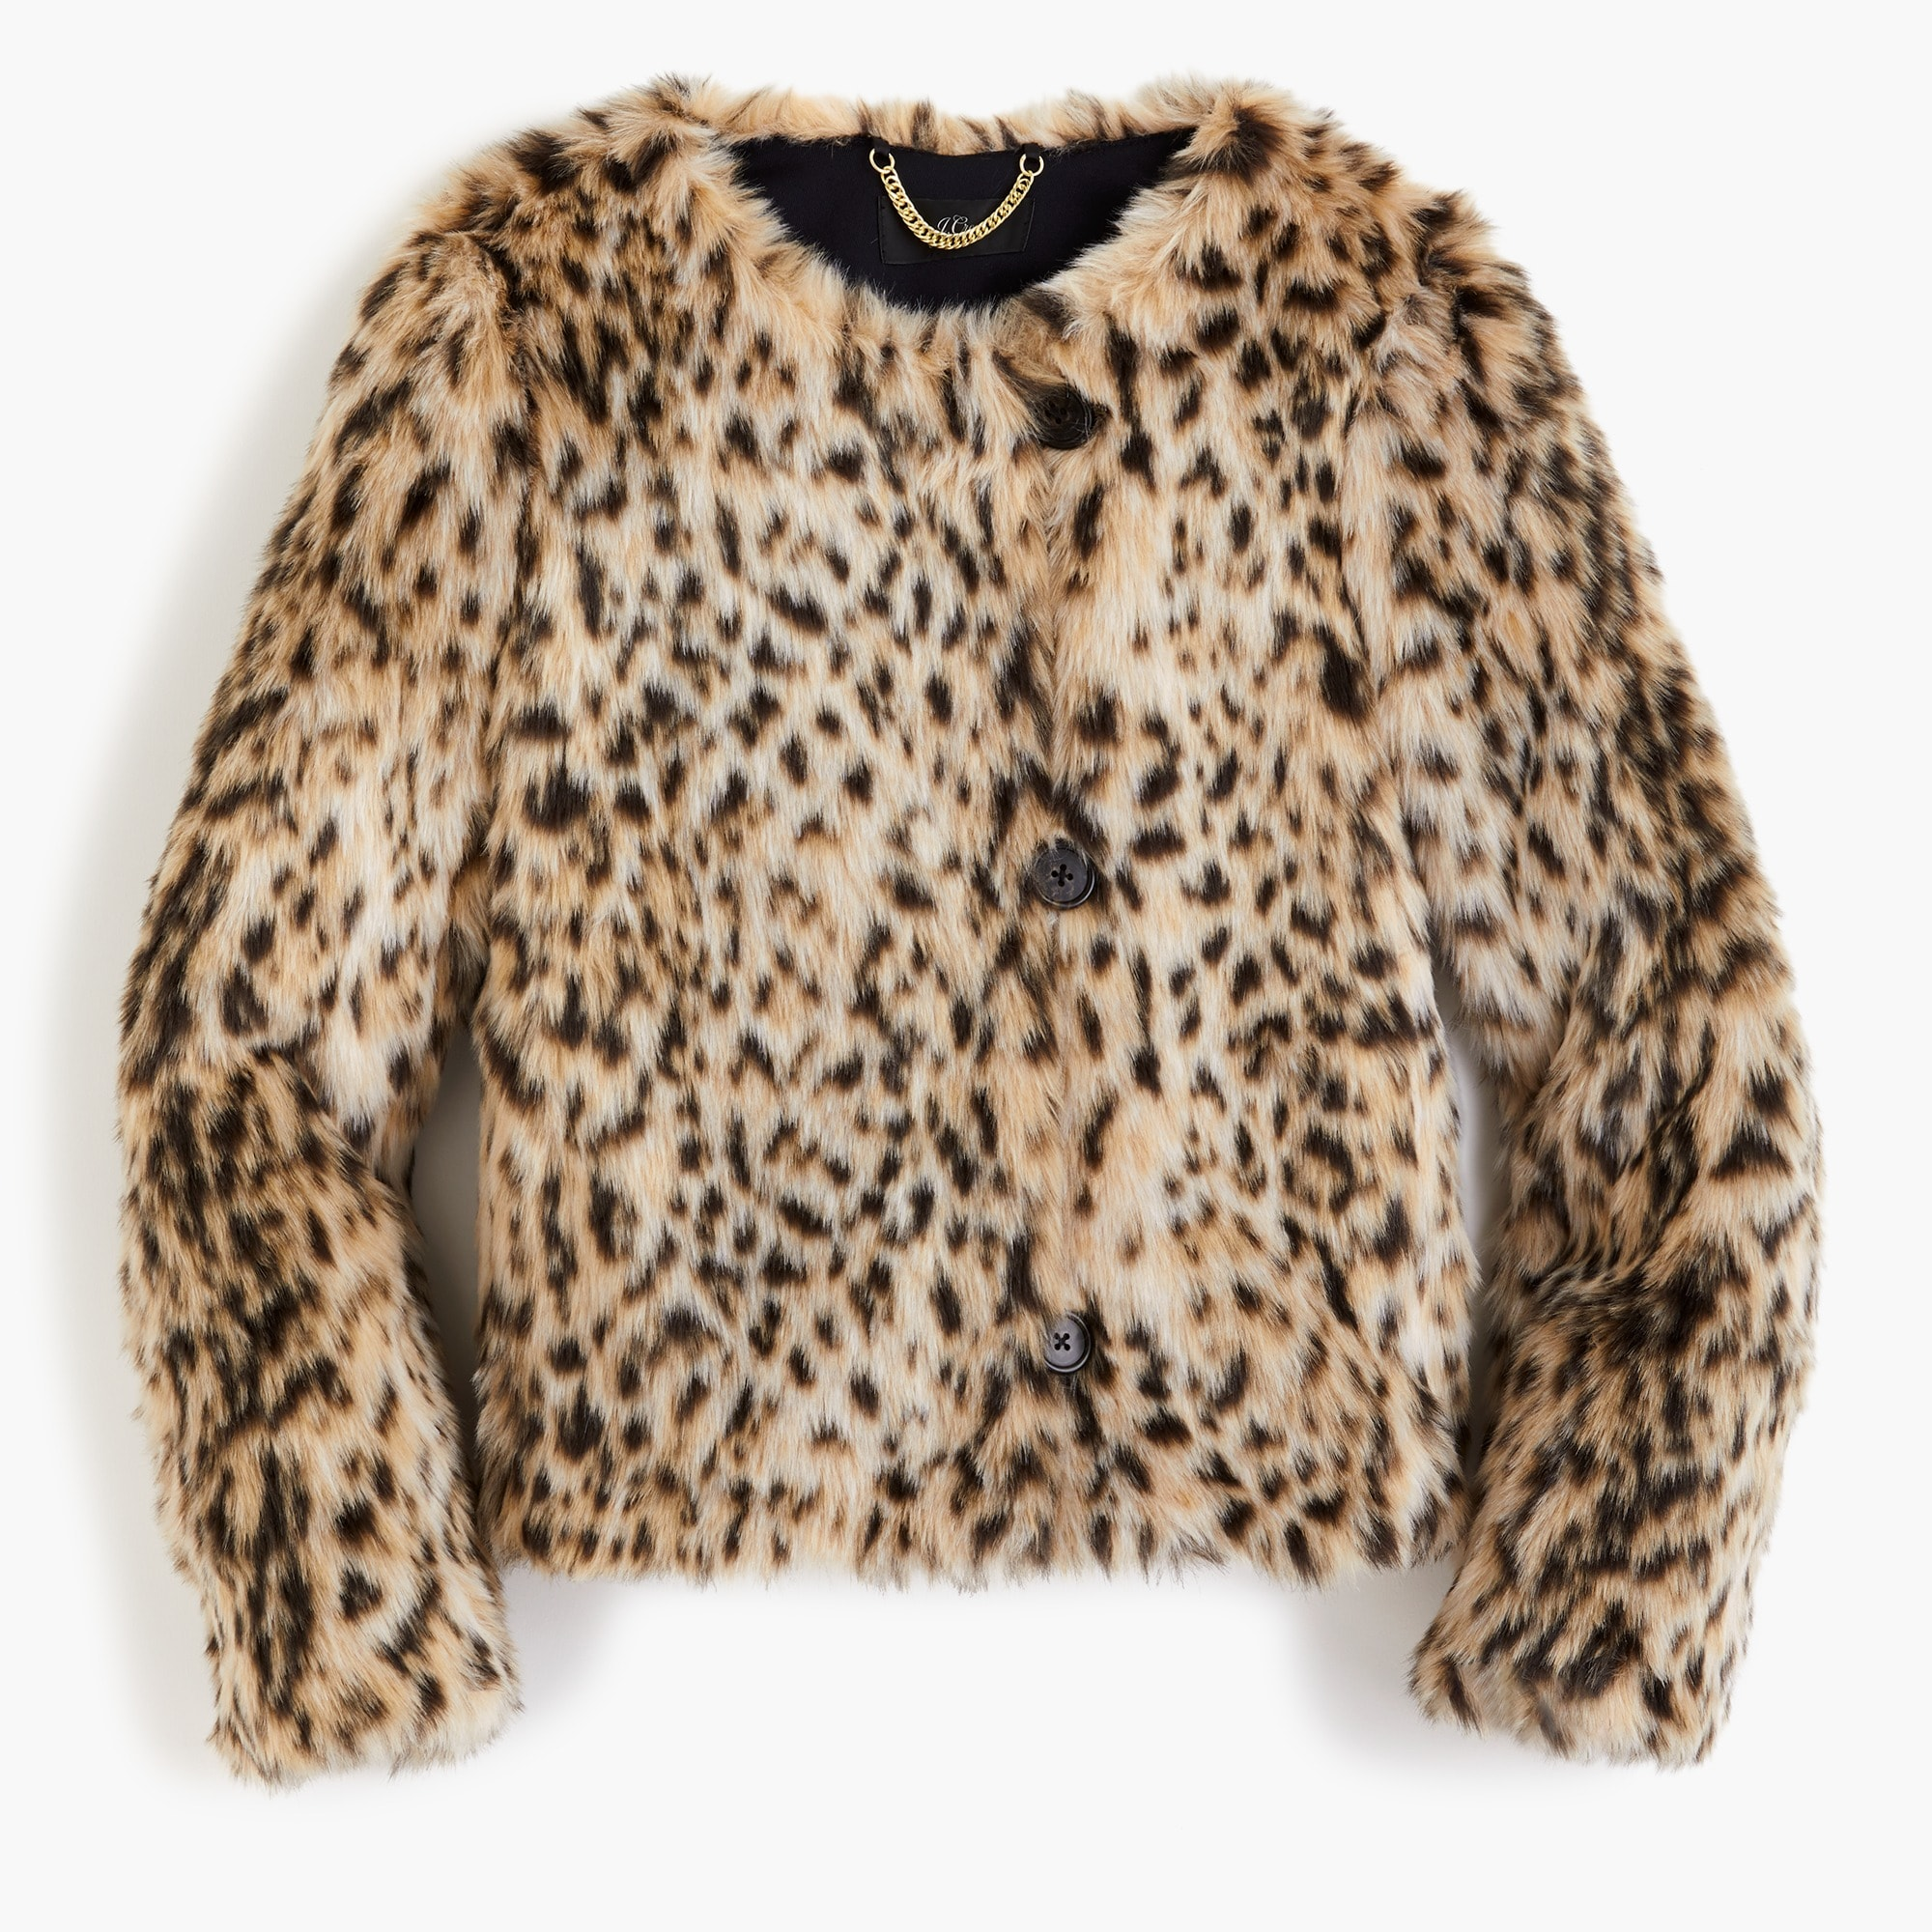 Image 1 for Cropped faux-fur coat in snow leopard